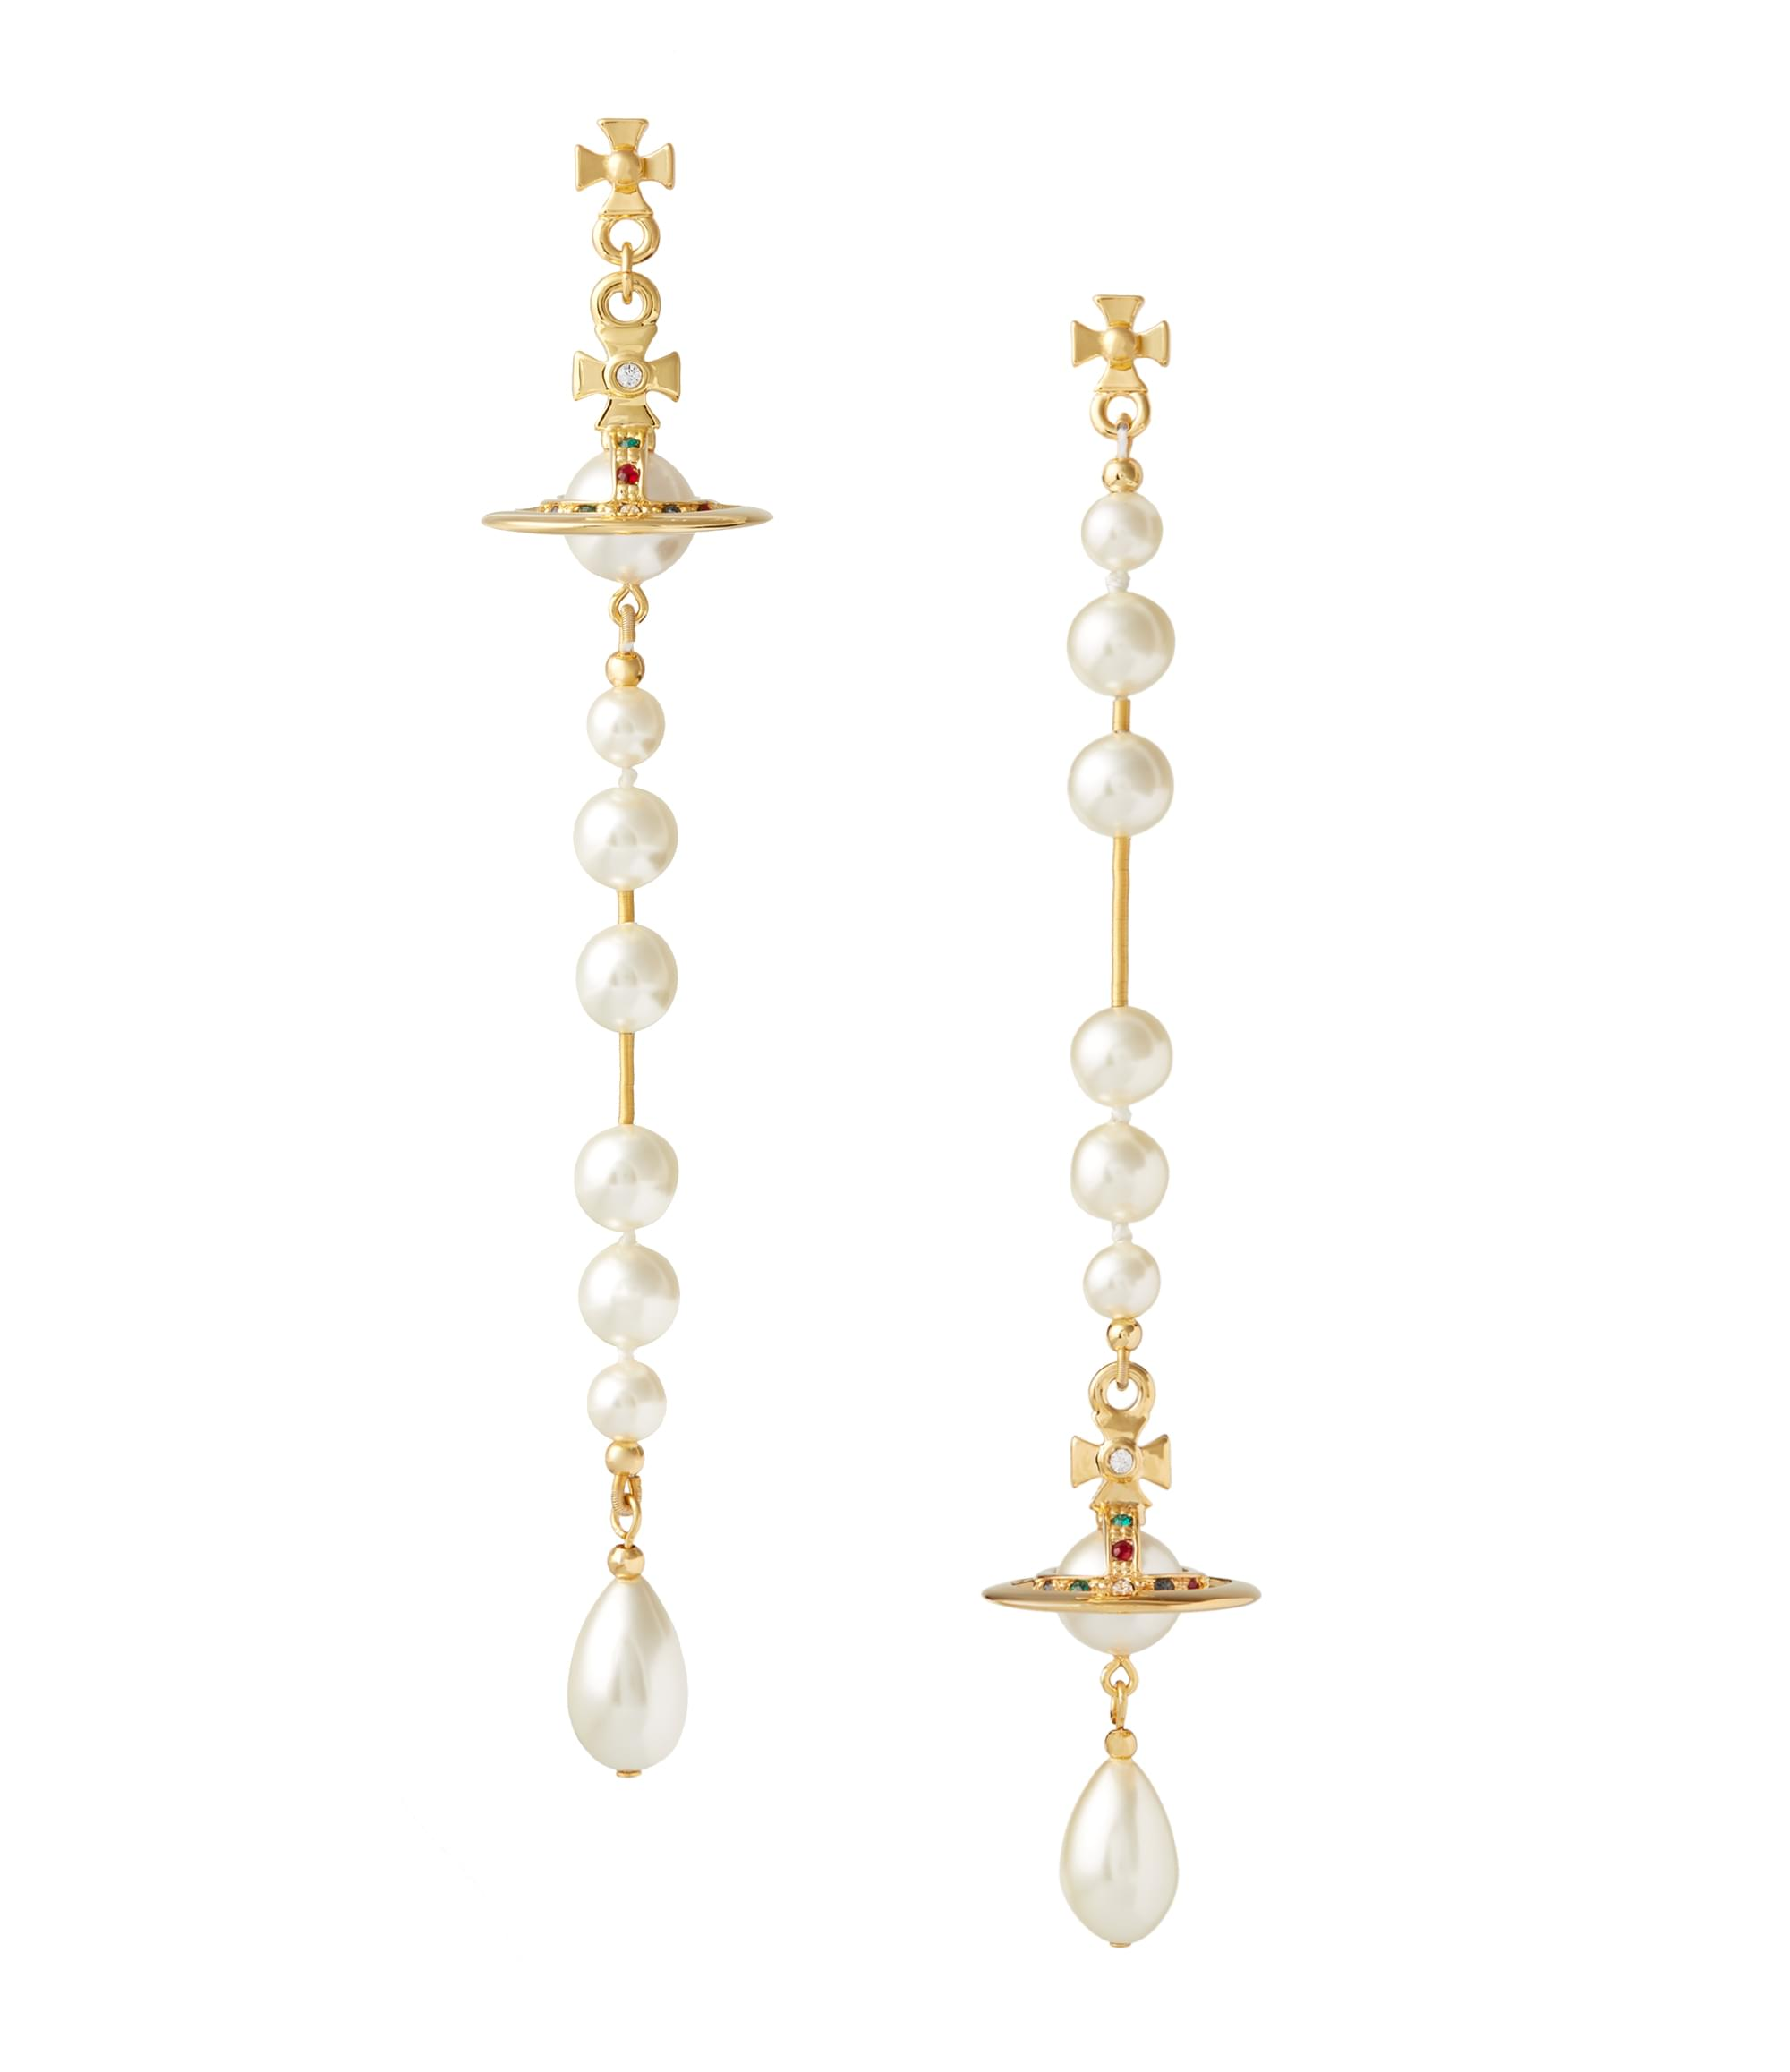 Vivienne Westwood Broken Pearl Earrings